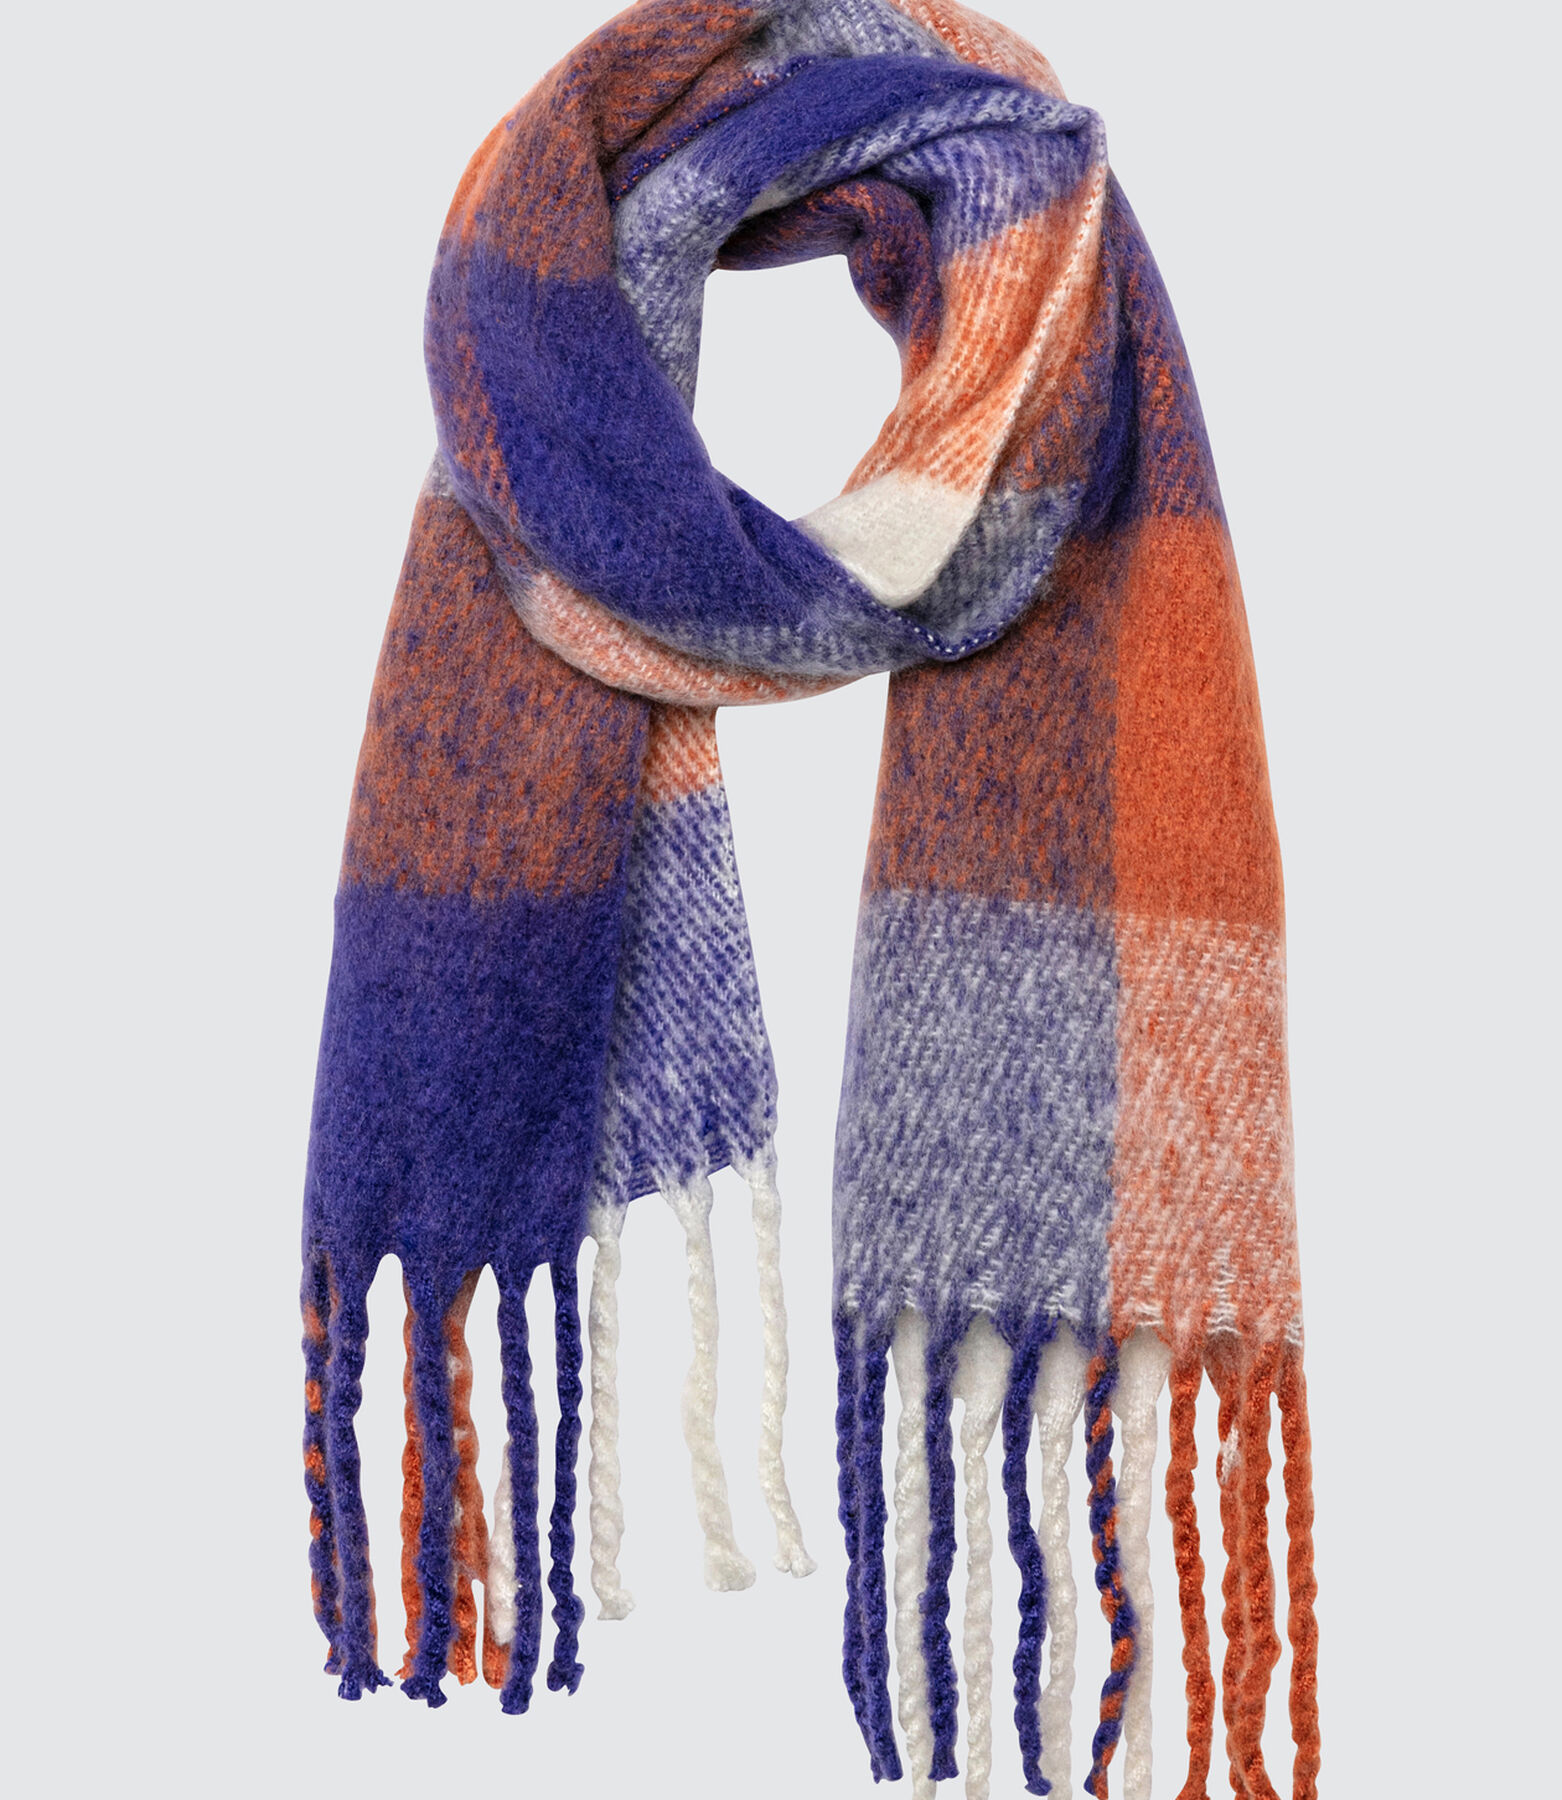 Foulard Chaud Gratté à Carreaux